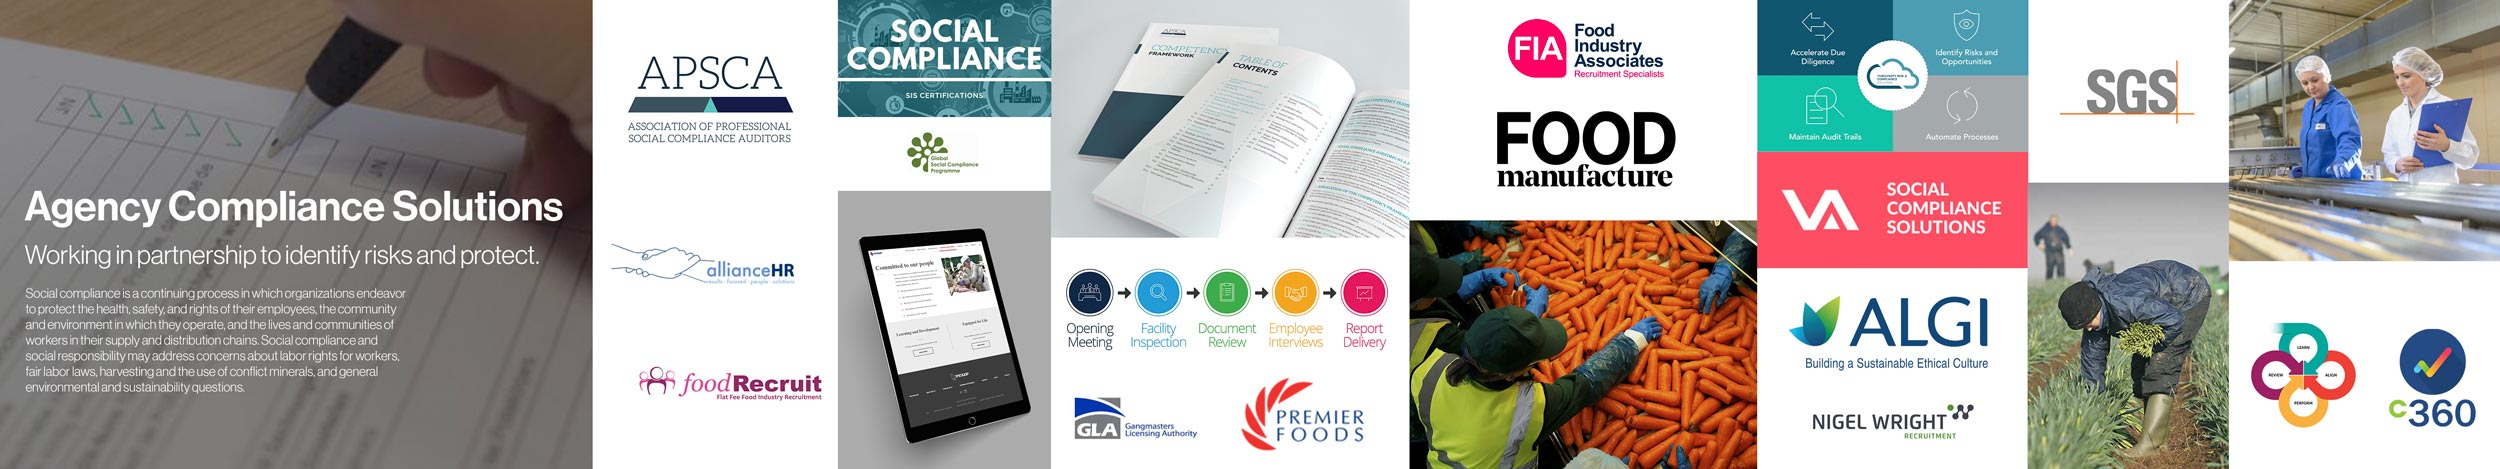 Agency Compliance Solutions logo design project Stylescape